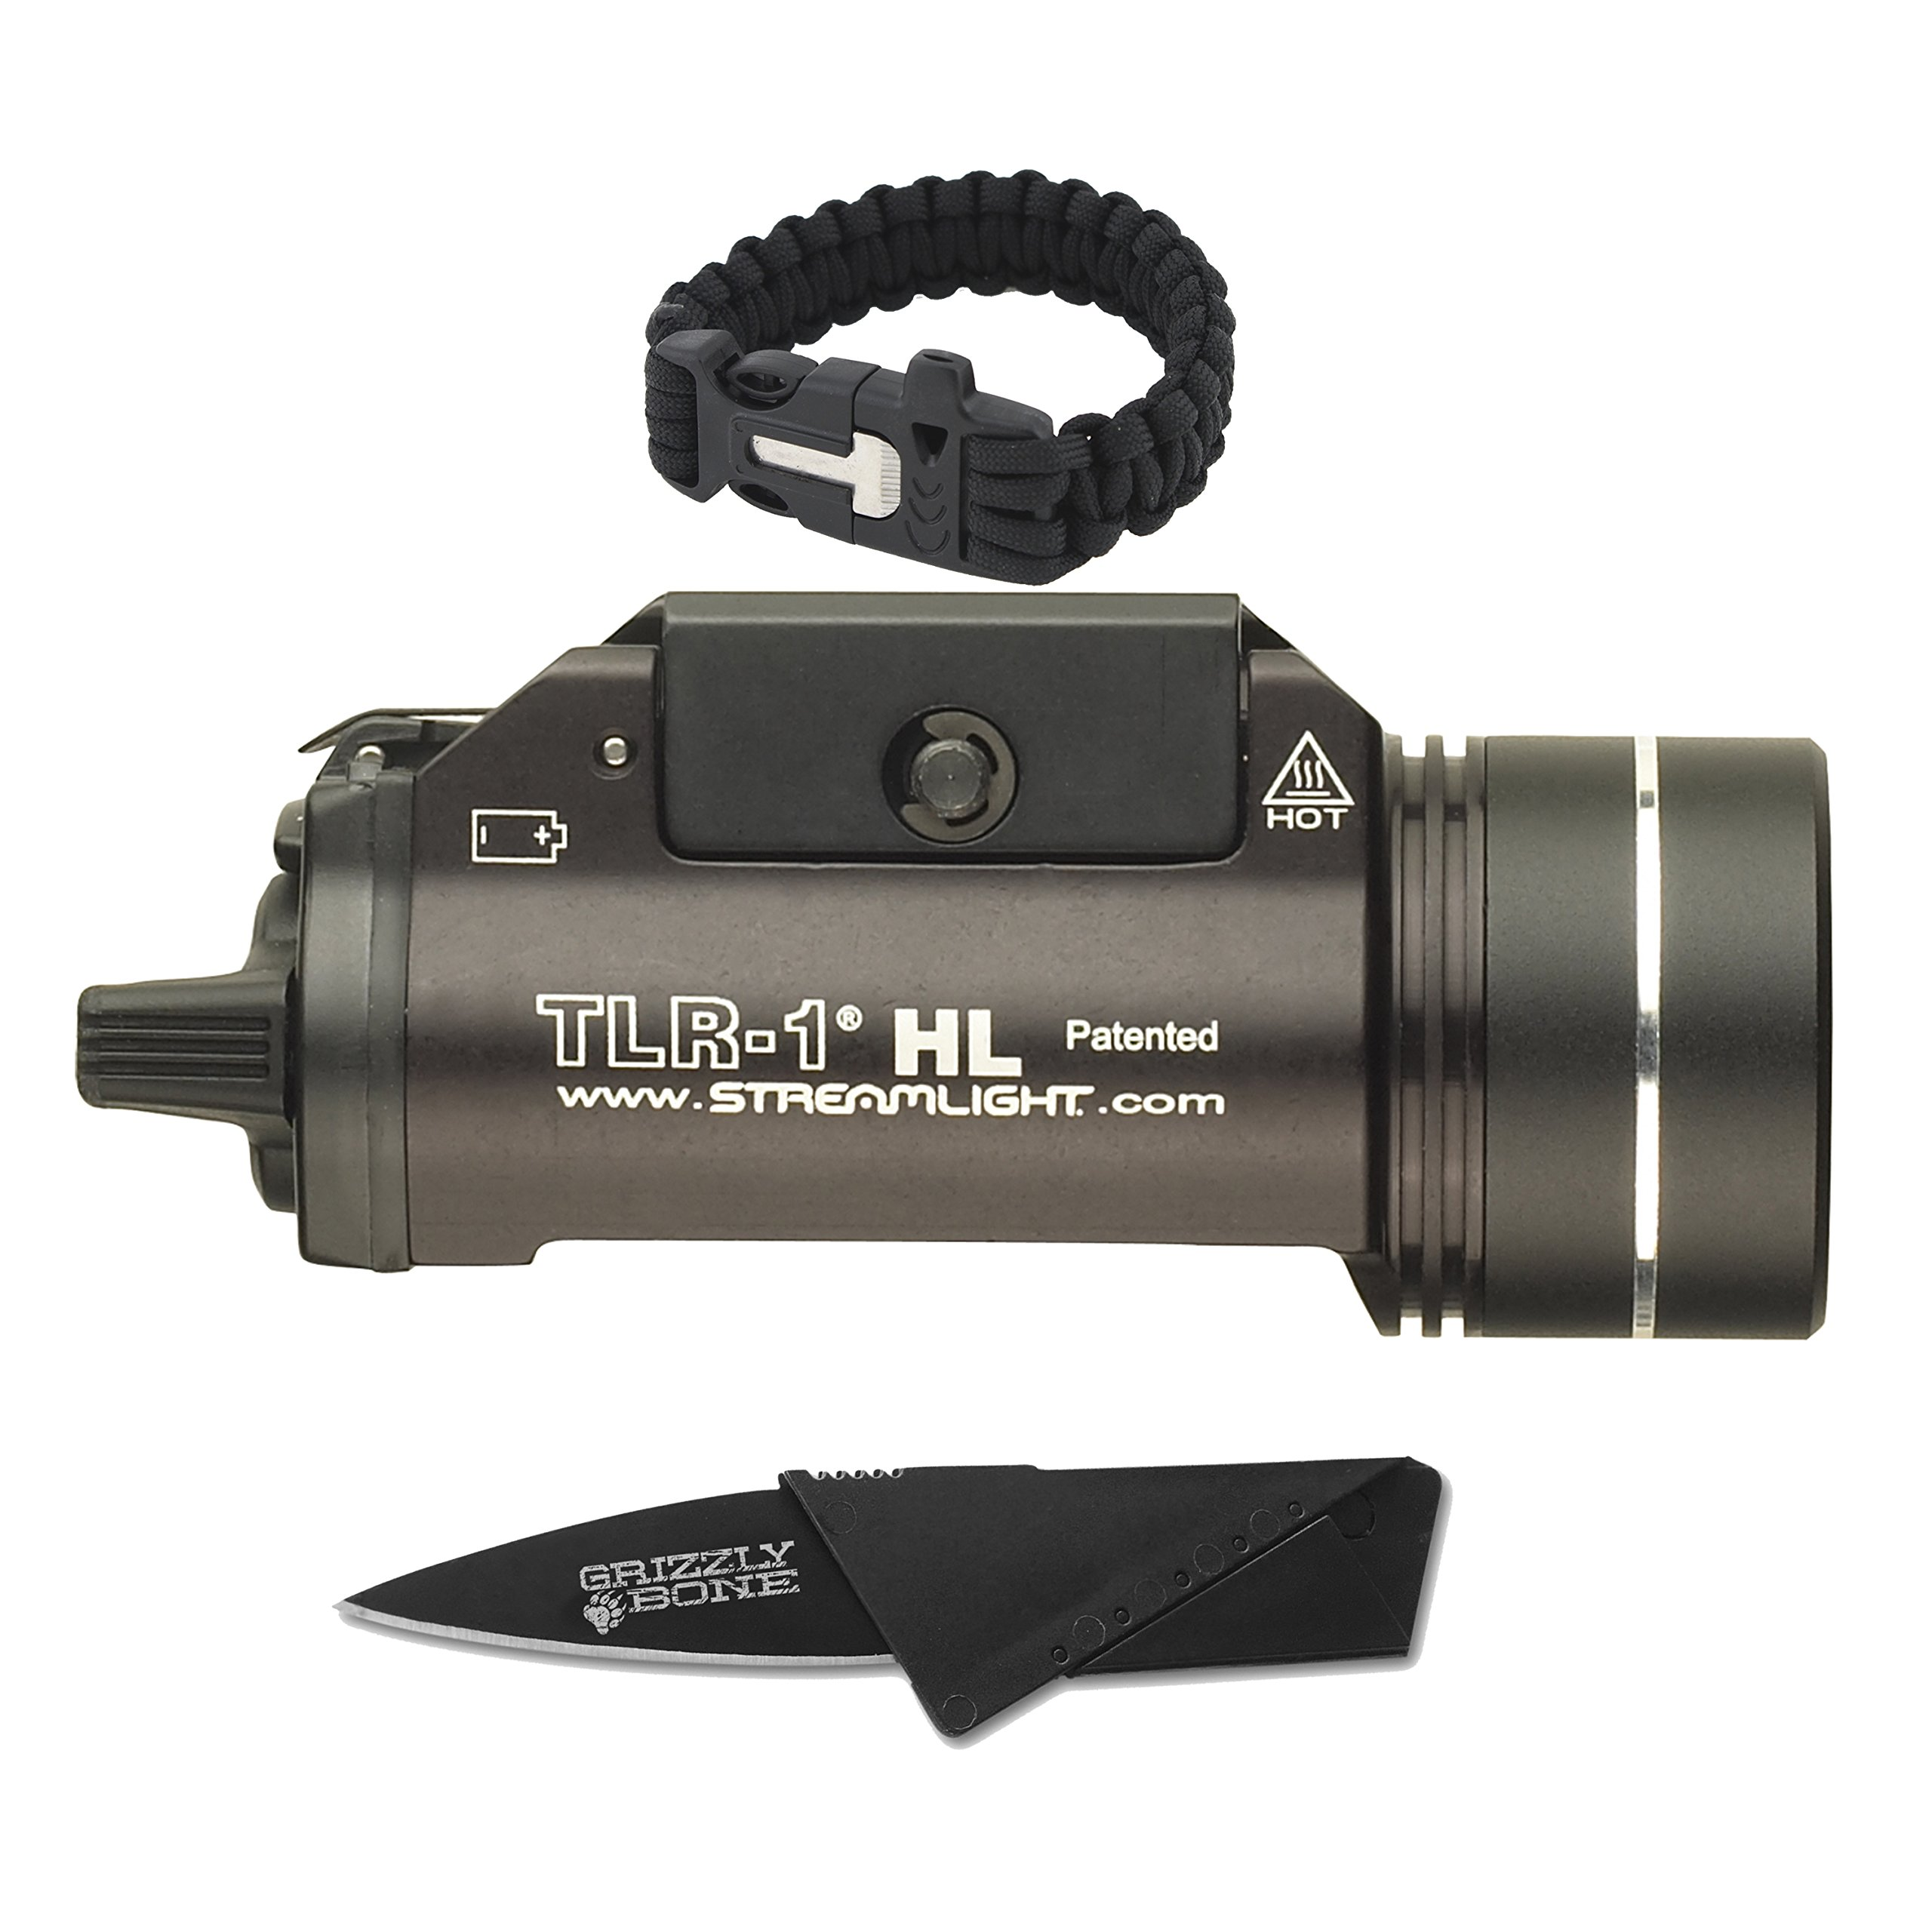 NEW Combo Pack Bright Streamlight TLR-1 HL-800 Lumens Tactical Ultimate Flashlight For Zombie Apocalypse Camping Power Outage Survival Kit W/ Free Paracord Bracelet & Credit Card Knife Survival Life